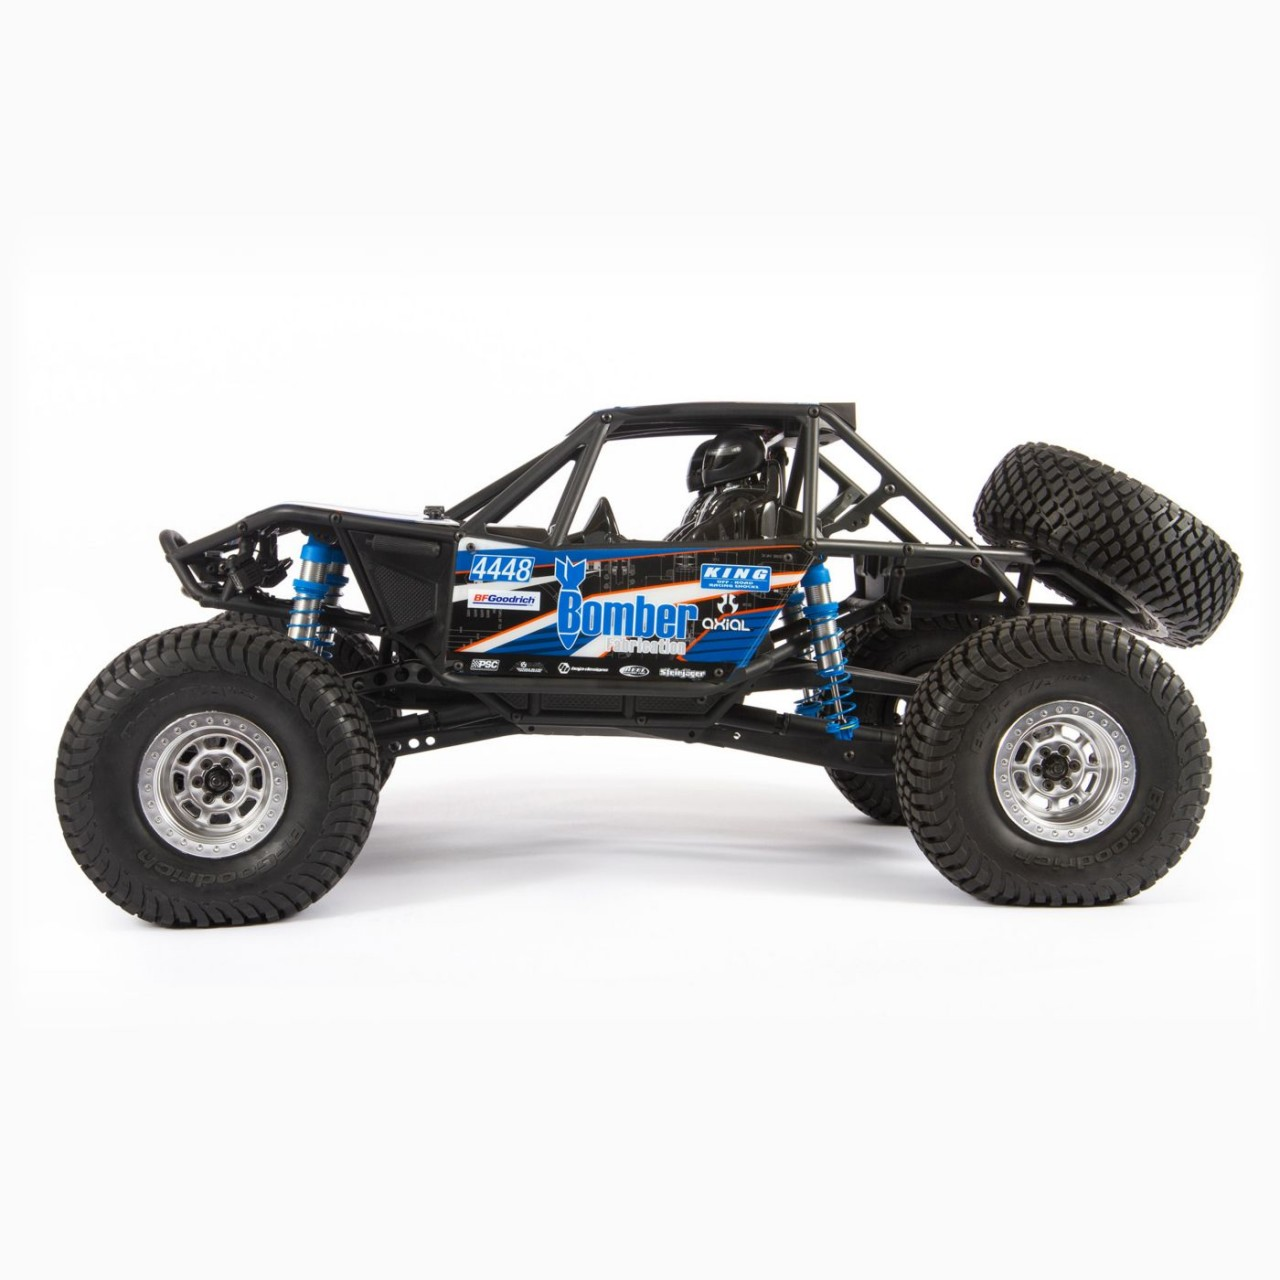 Axial 1/10 RR10 Bomber 4WD Rock Racer RTR, Slawson AXI03016T1